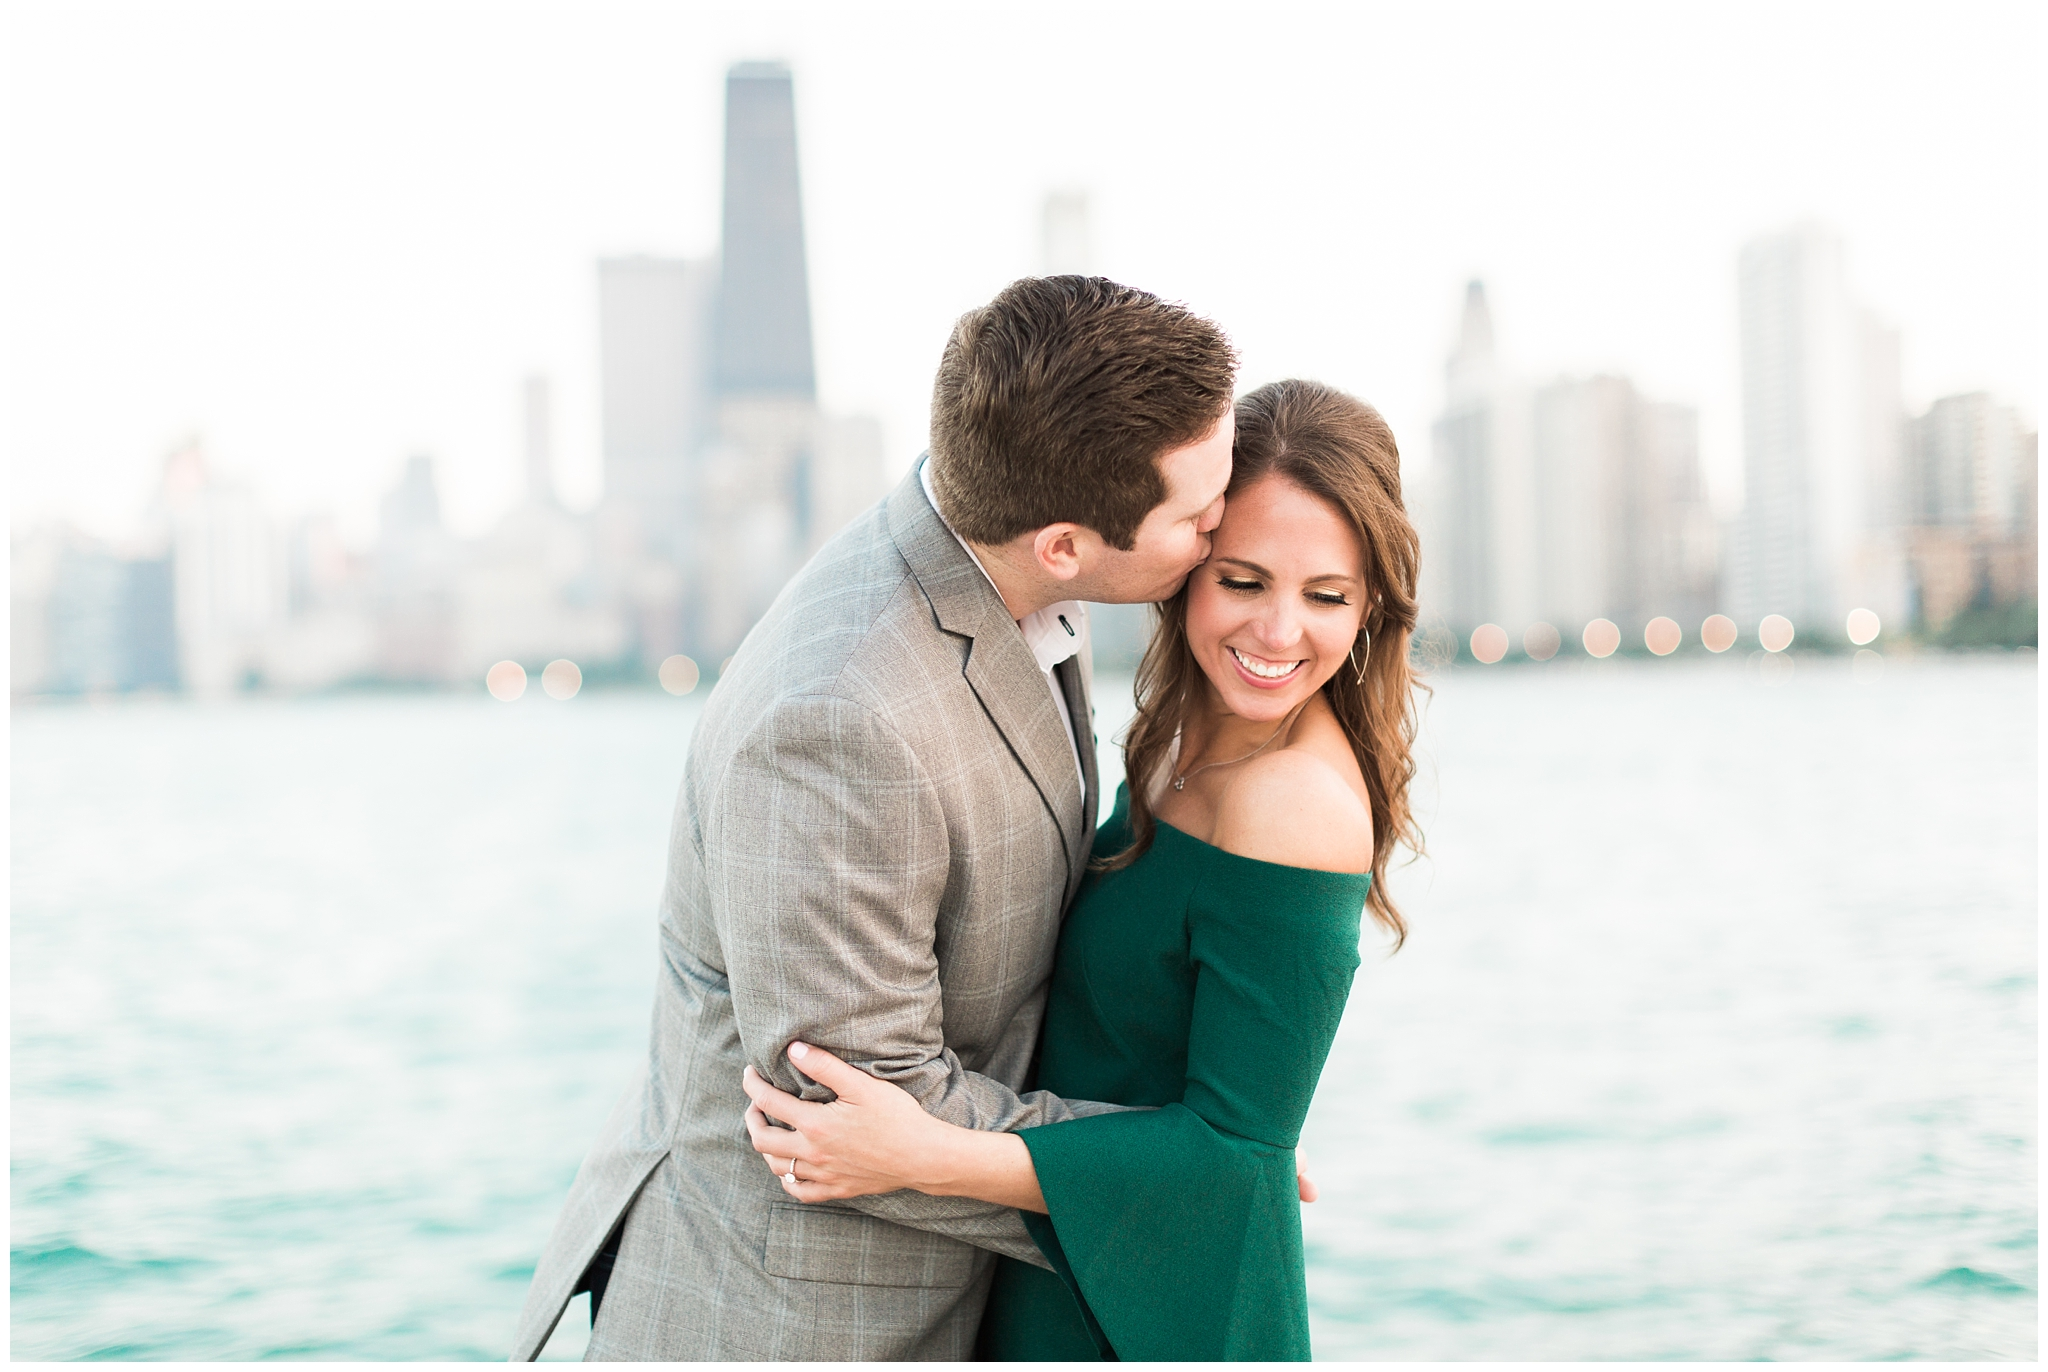 chicagoengagementsession_northavebeachengagementsession_northavebeach_northavenuebeach_northavenuebeachengagementsession_chicagoriverwalk_chicagoriverwalkengagementsession_0013.jpg